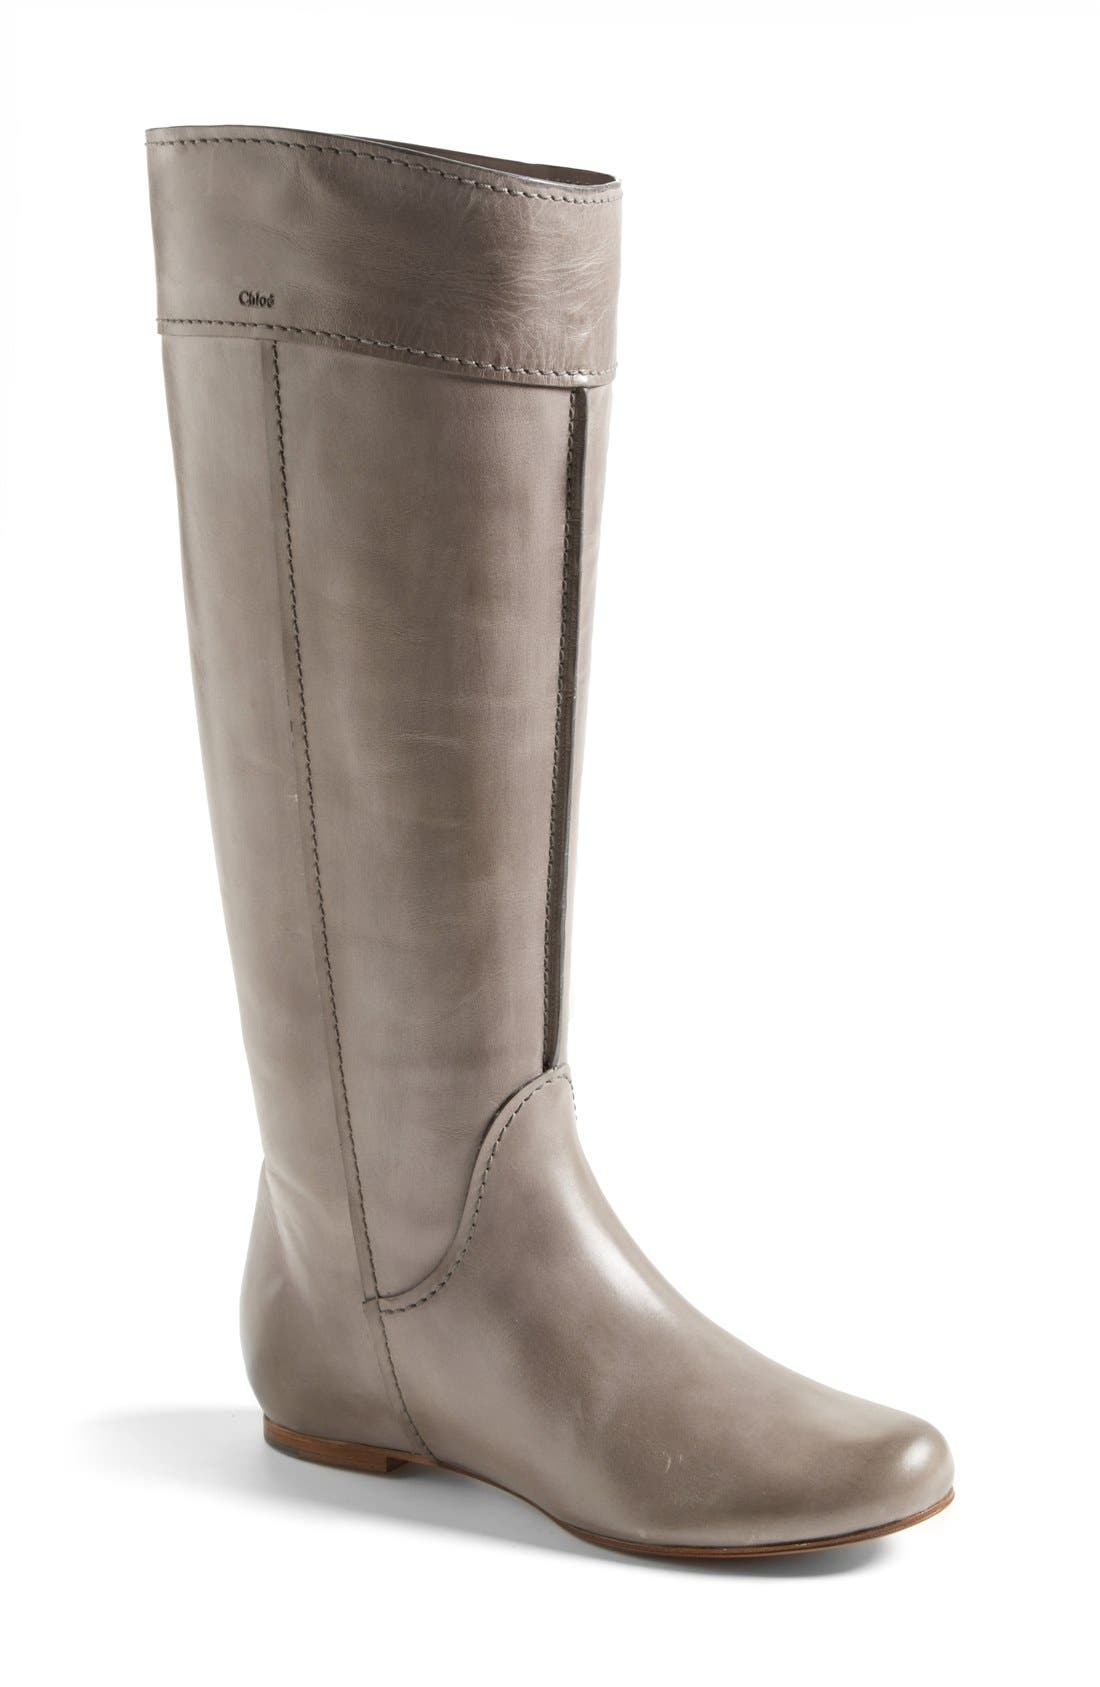 Main Image - Chloé 'Heloise' Tall Calfskin Leather Boot (Women)